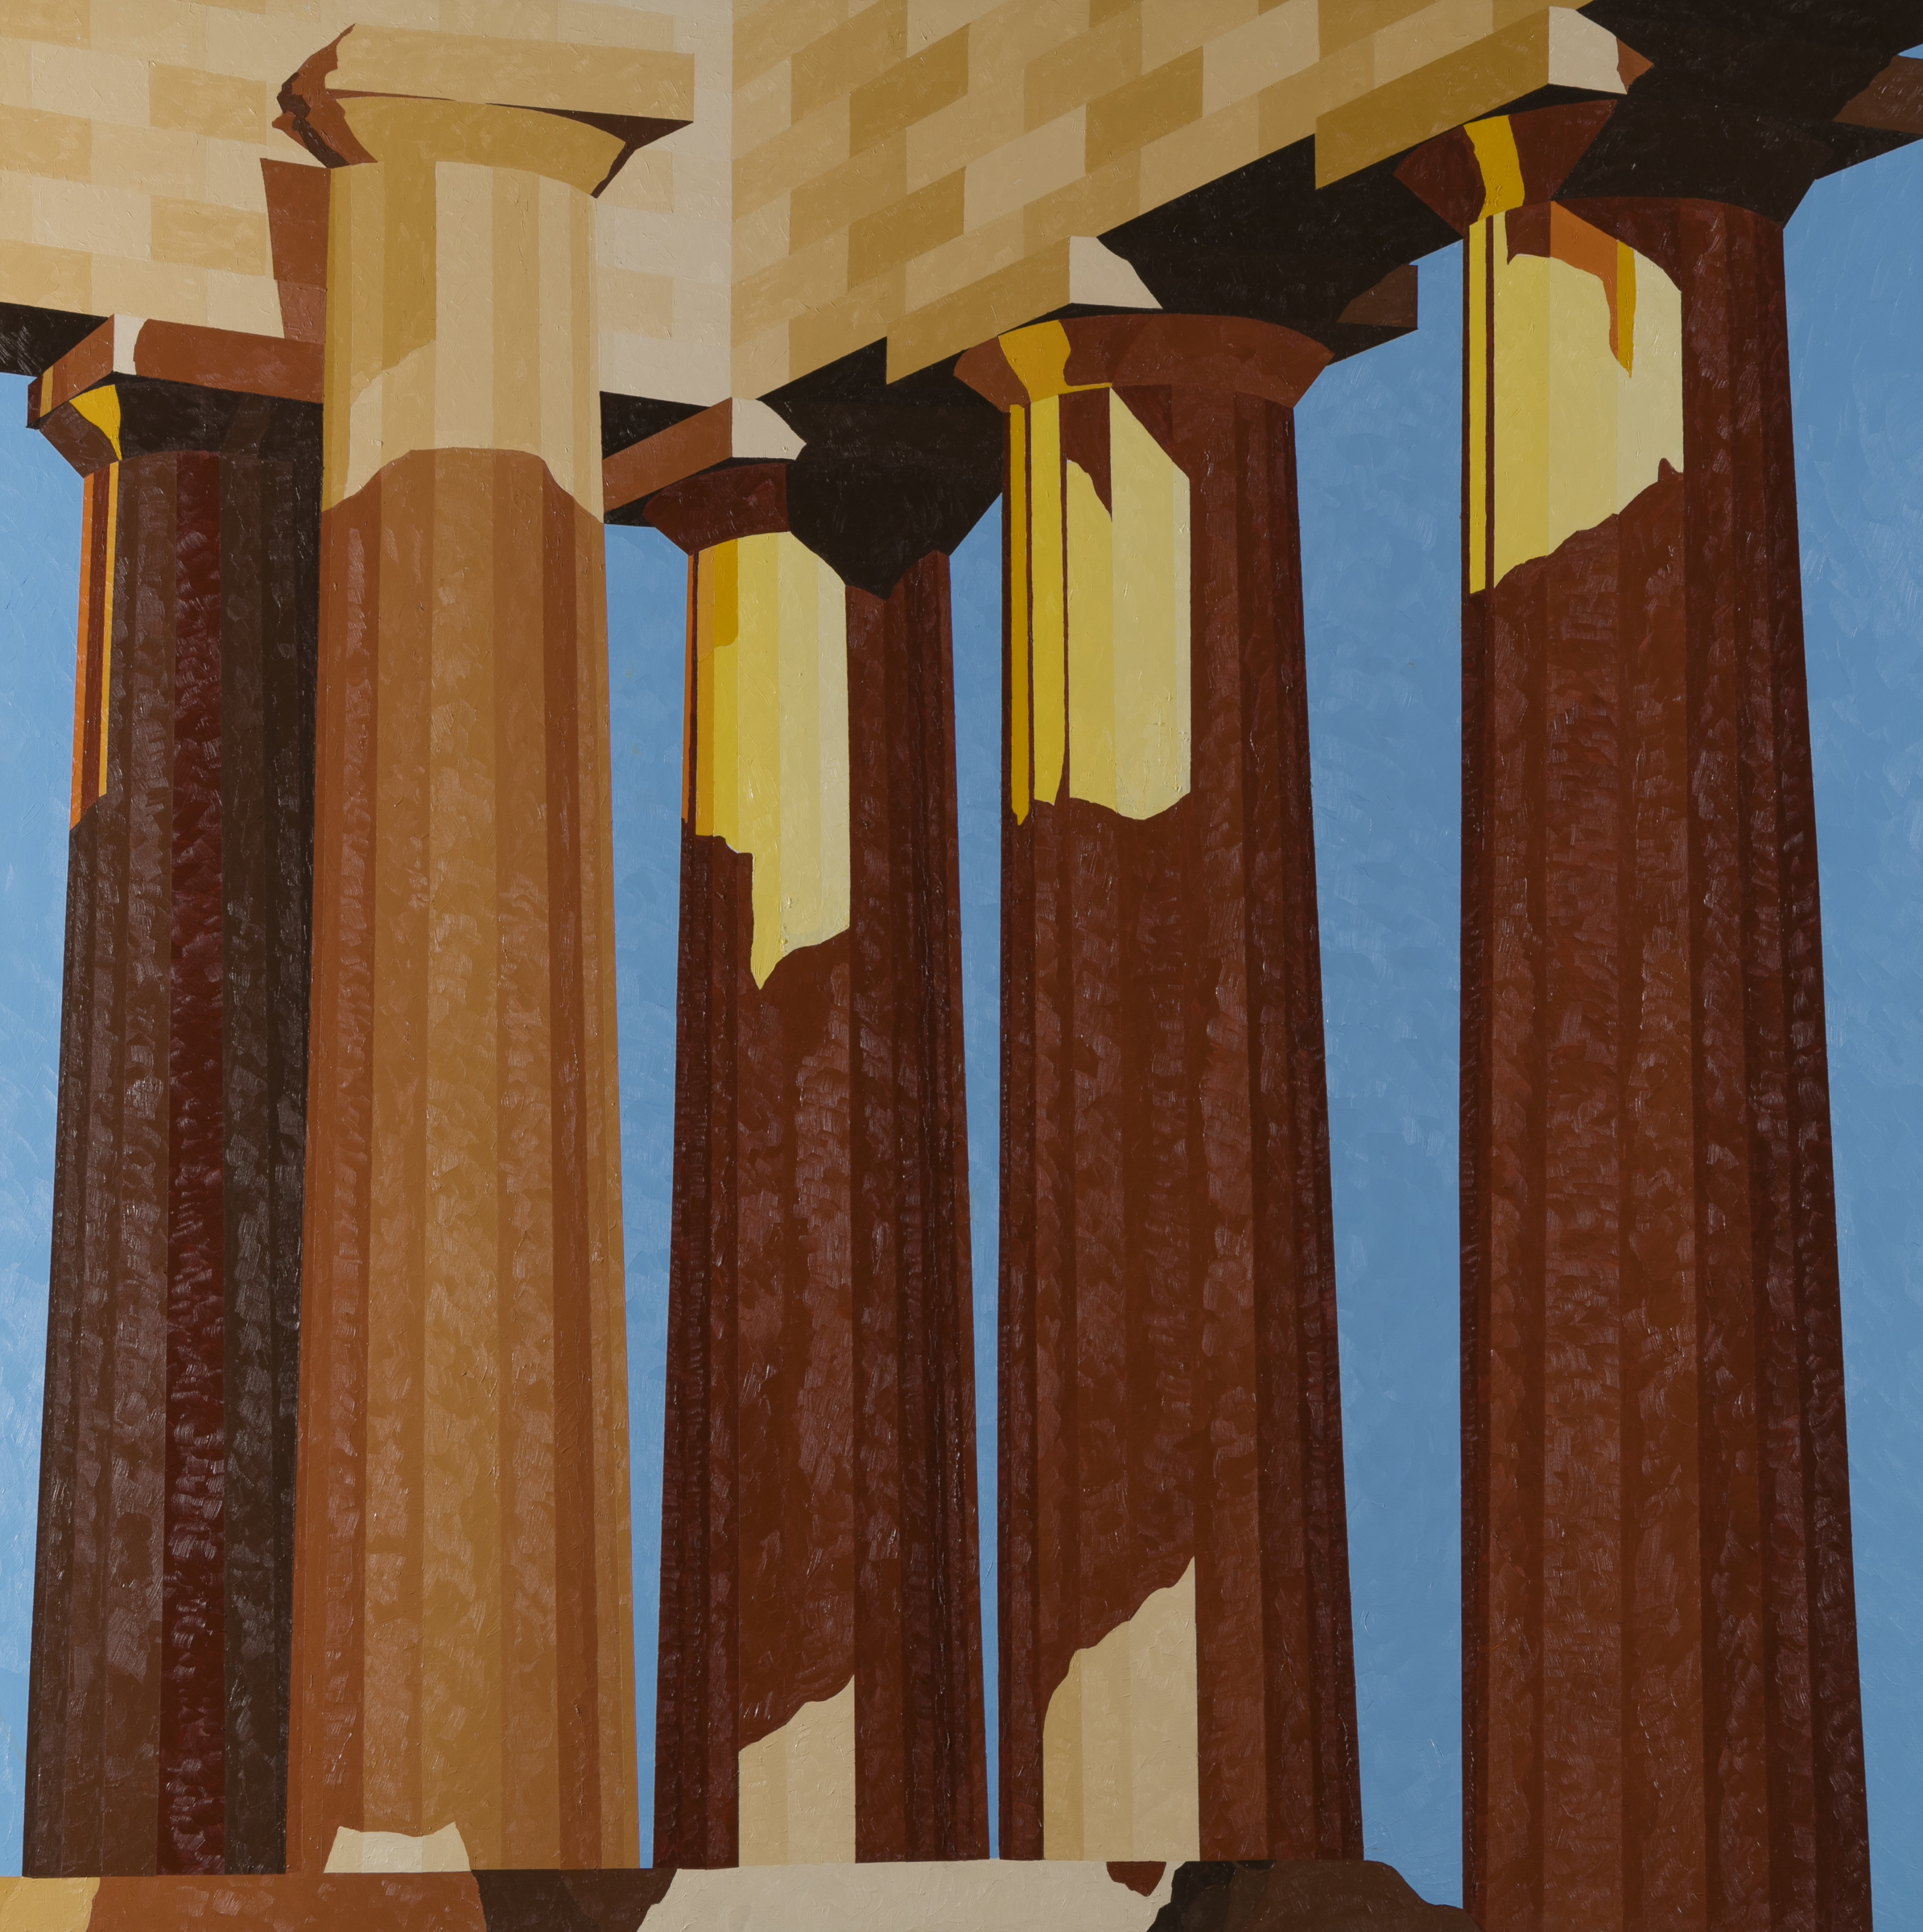 """Parthenon"" by Barry Burcaw, 50 x 50in, oil on canvas (2016), $4500 